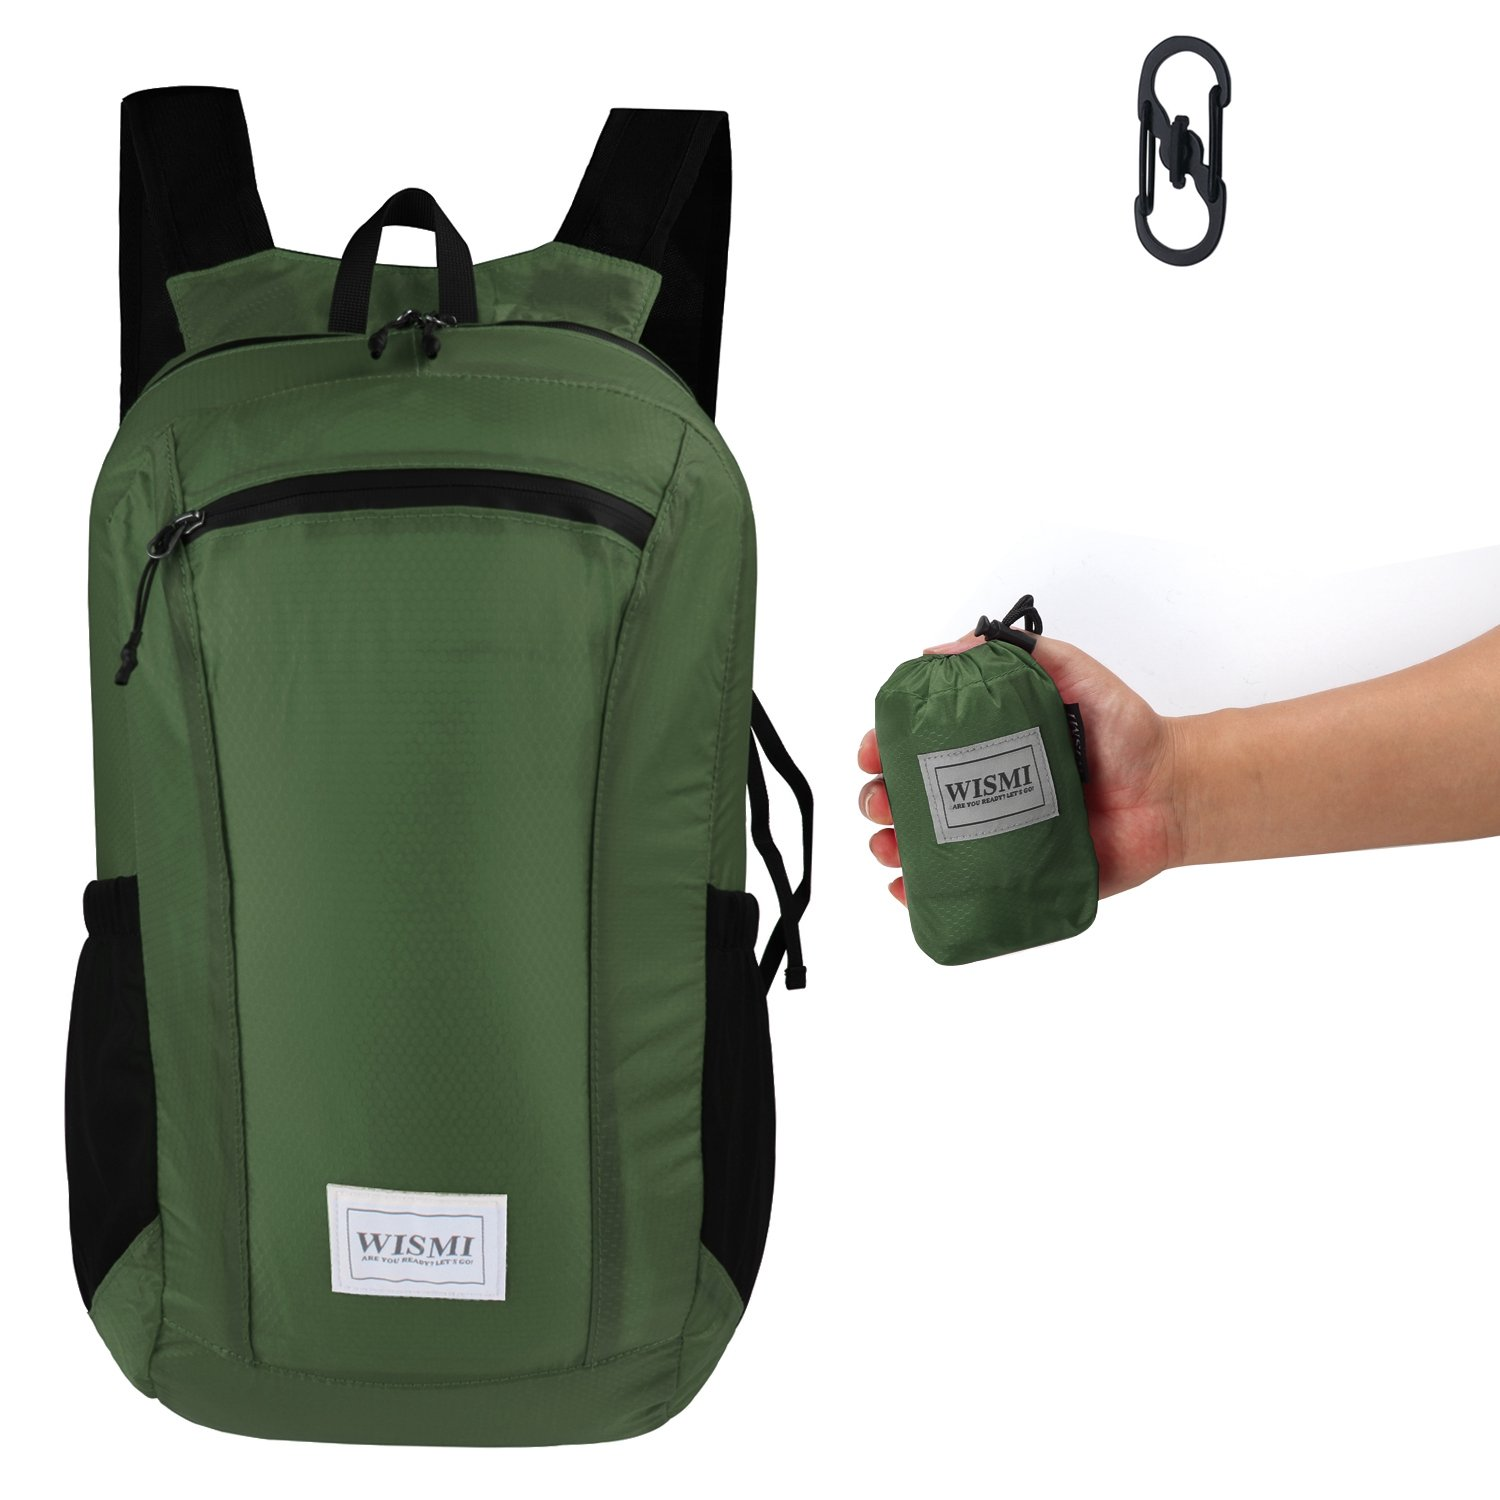 067a6715ac68 Amazon.com   SUNNY SHOP Lightweight Hiking Backpack Waterproof Foldable  Travel Bag Camping Daypack Army   Sports   Outdoors